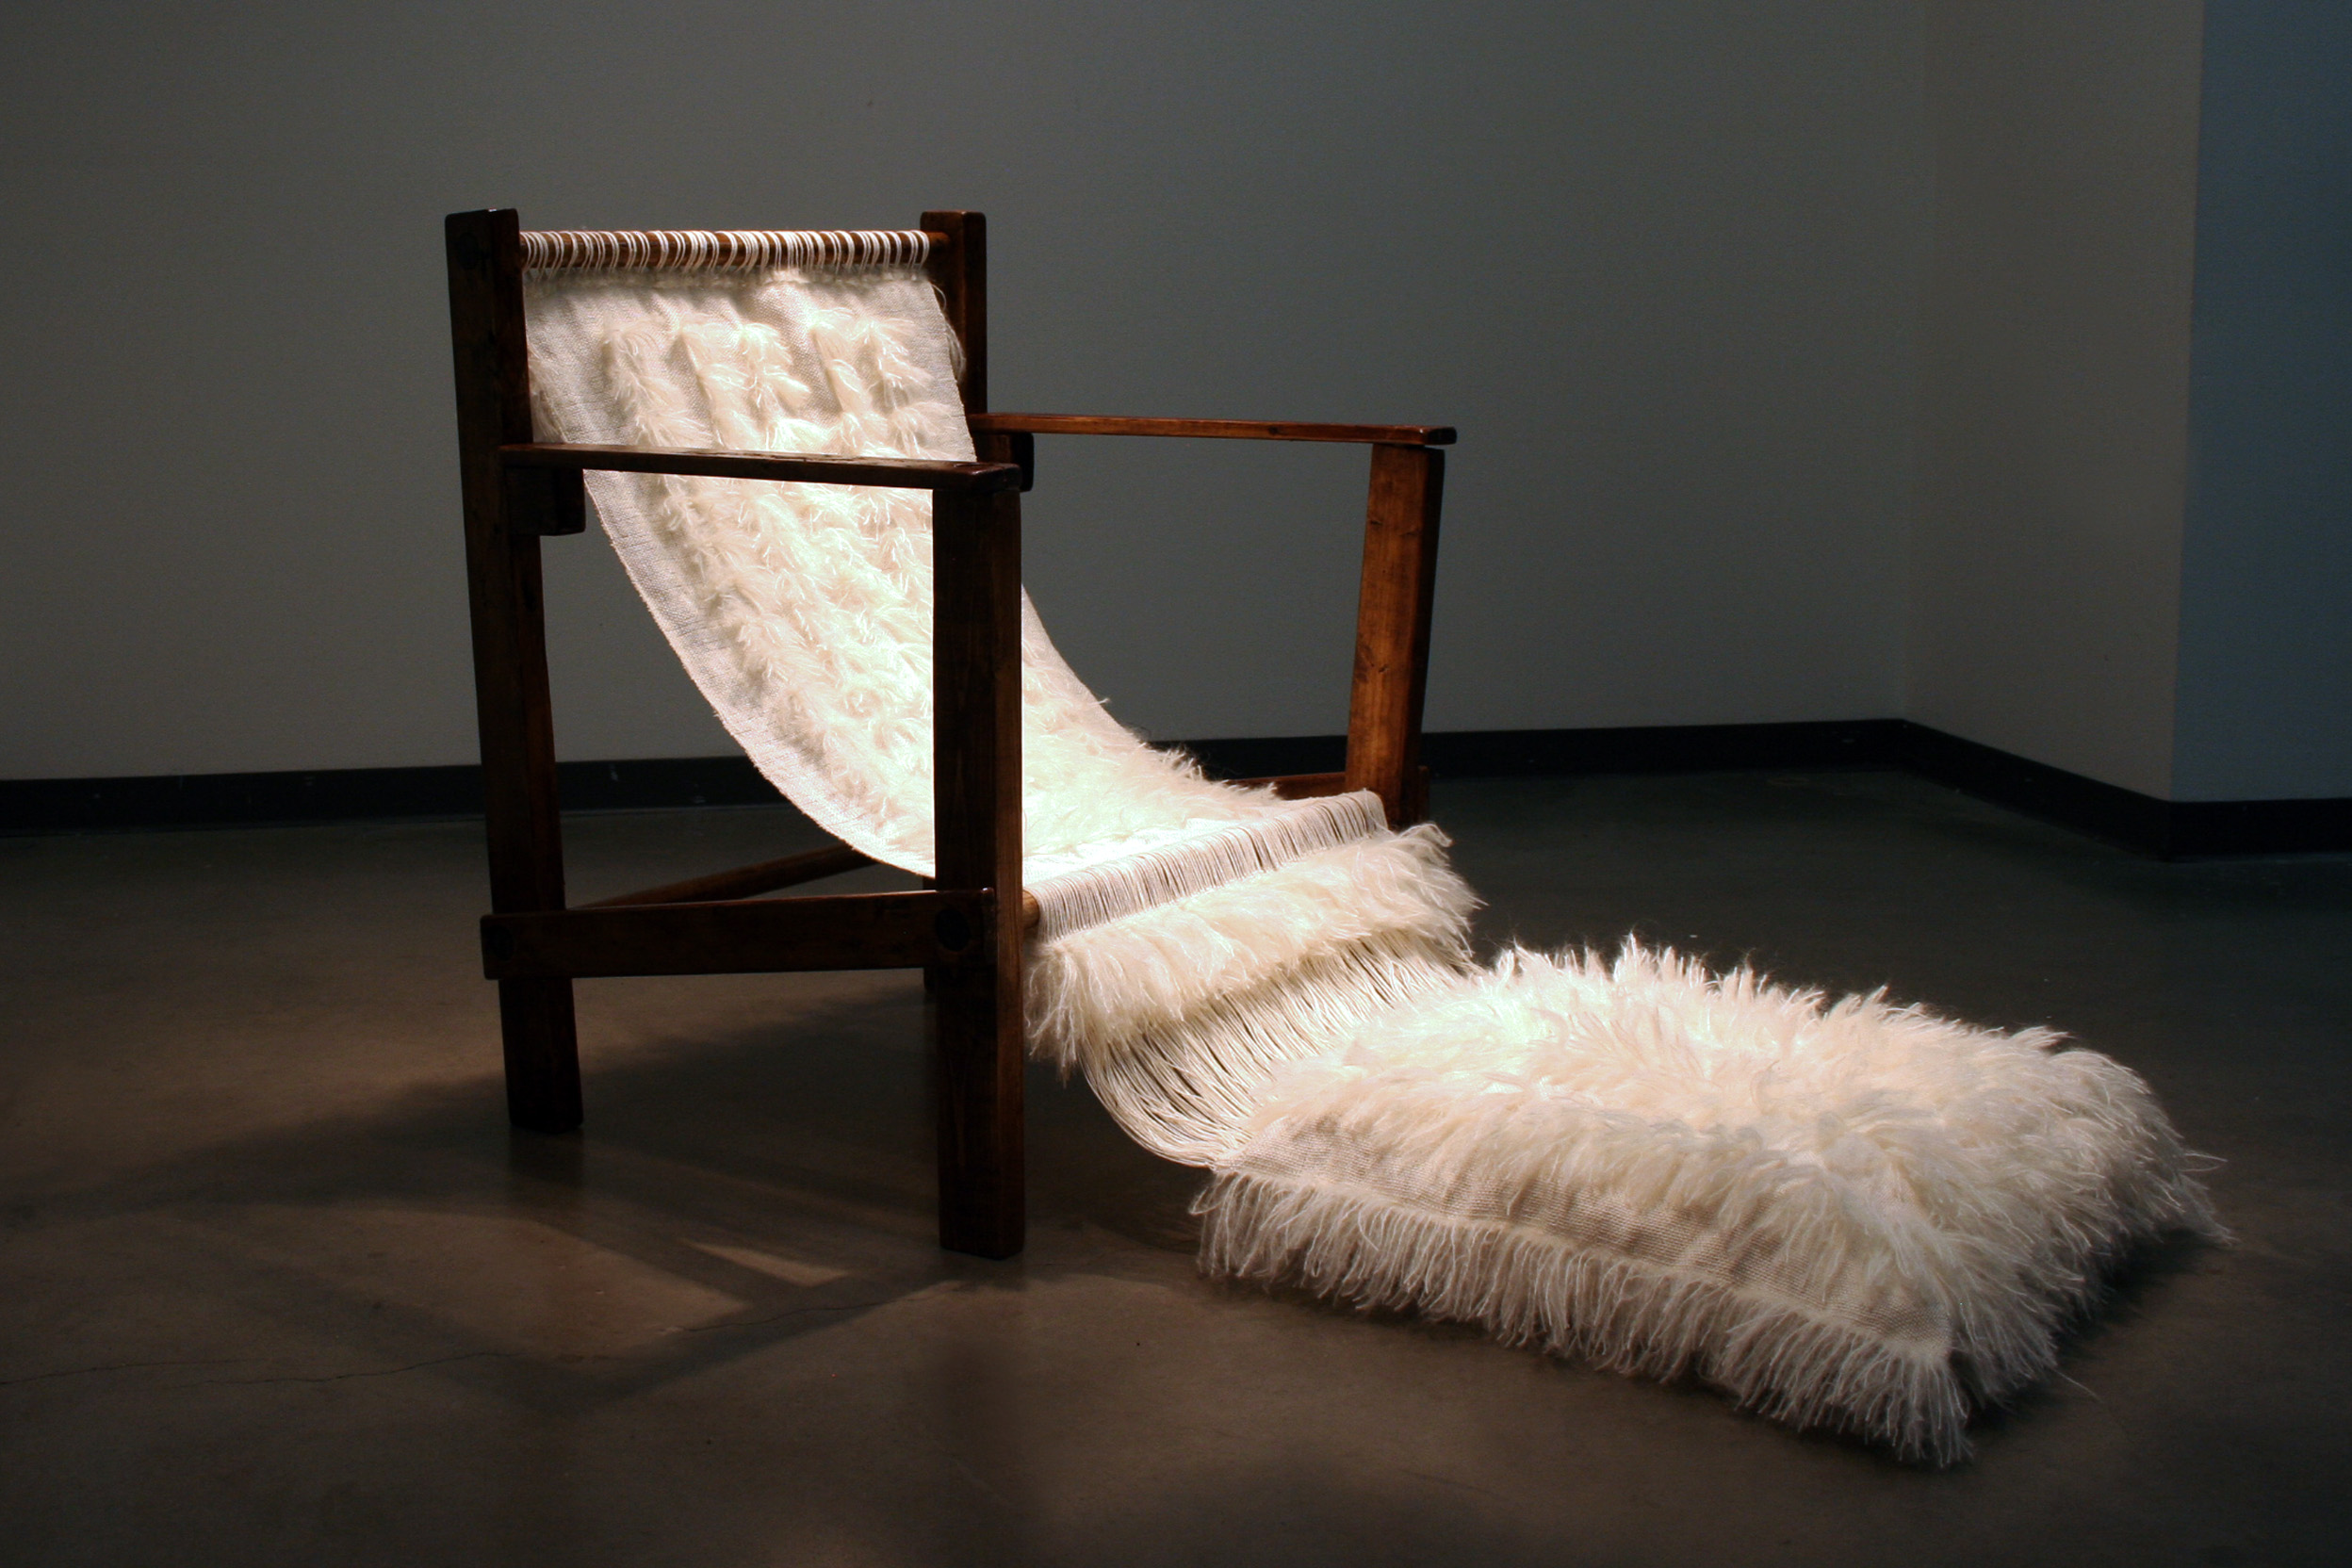 Heidy Nyboer-Franco Advanced Fibres , 2018  Concordia University   Independent Research /  This course provides a framework for students to develop their studio practice outside of the context of assignment-driven work.  Heidy created a series of woven chairs, each chair based on a different member of her immediate family.